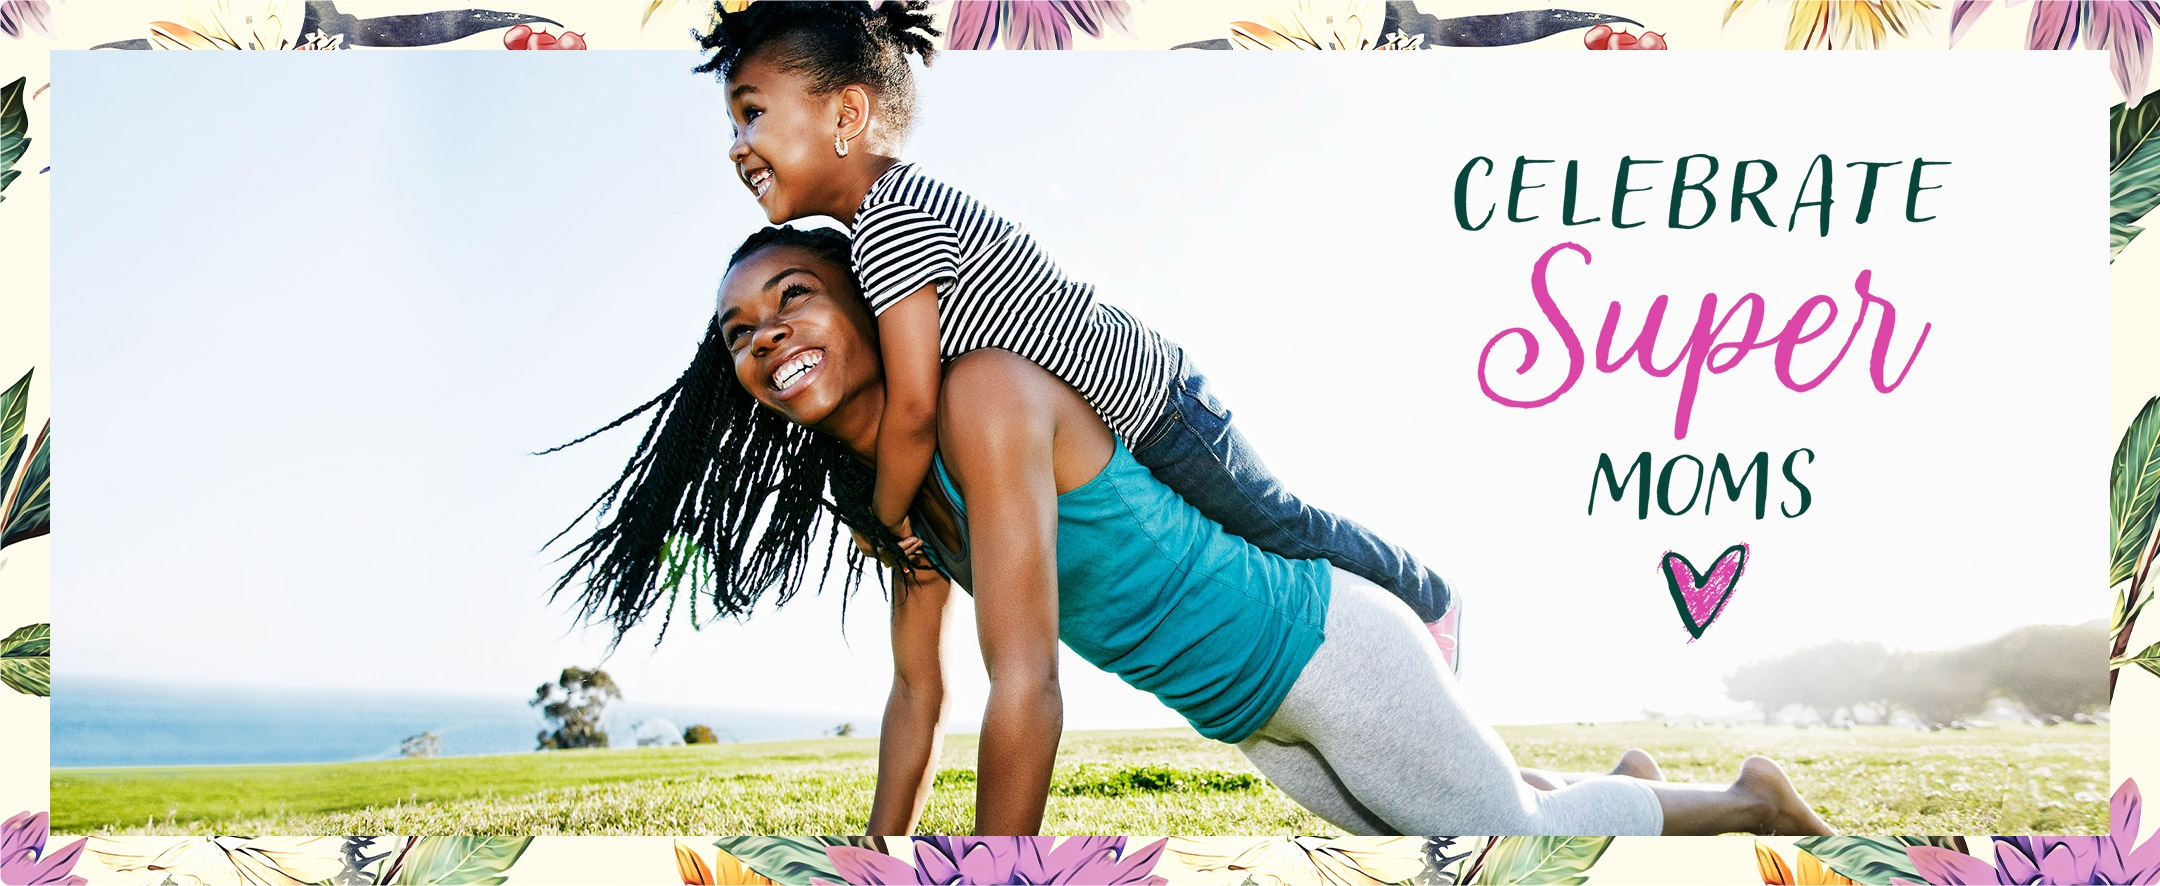 Mother doing yoga with smiling daughter on her back